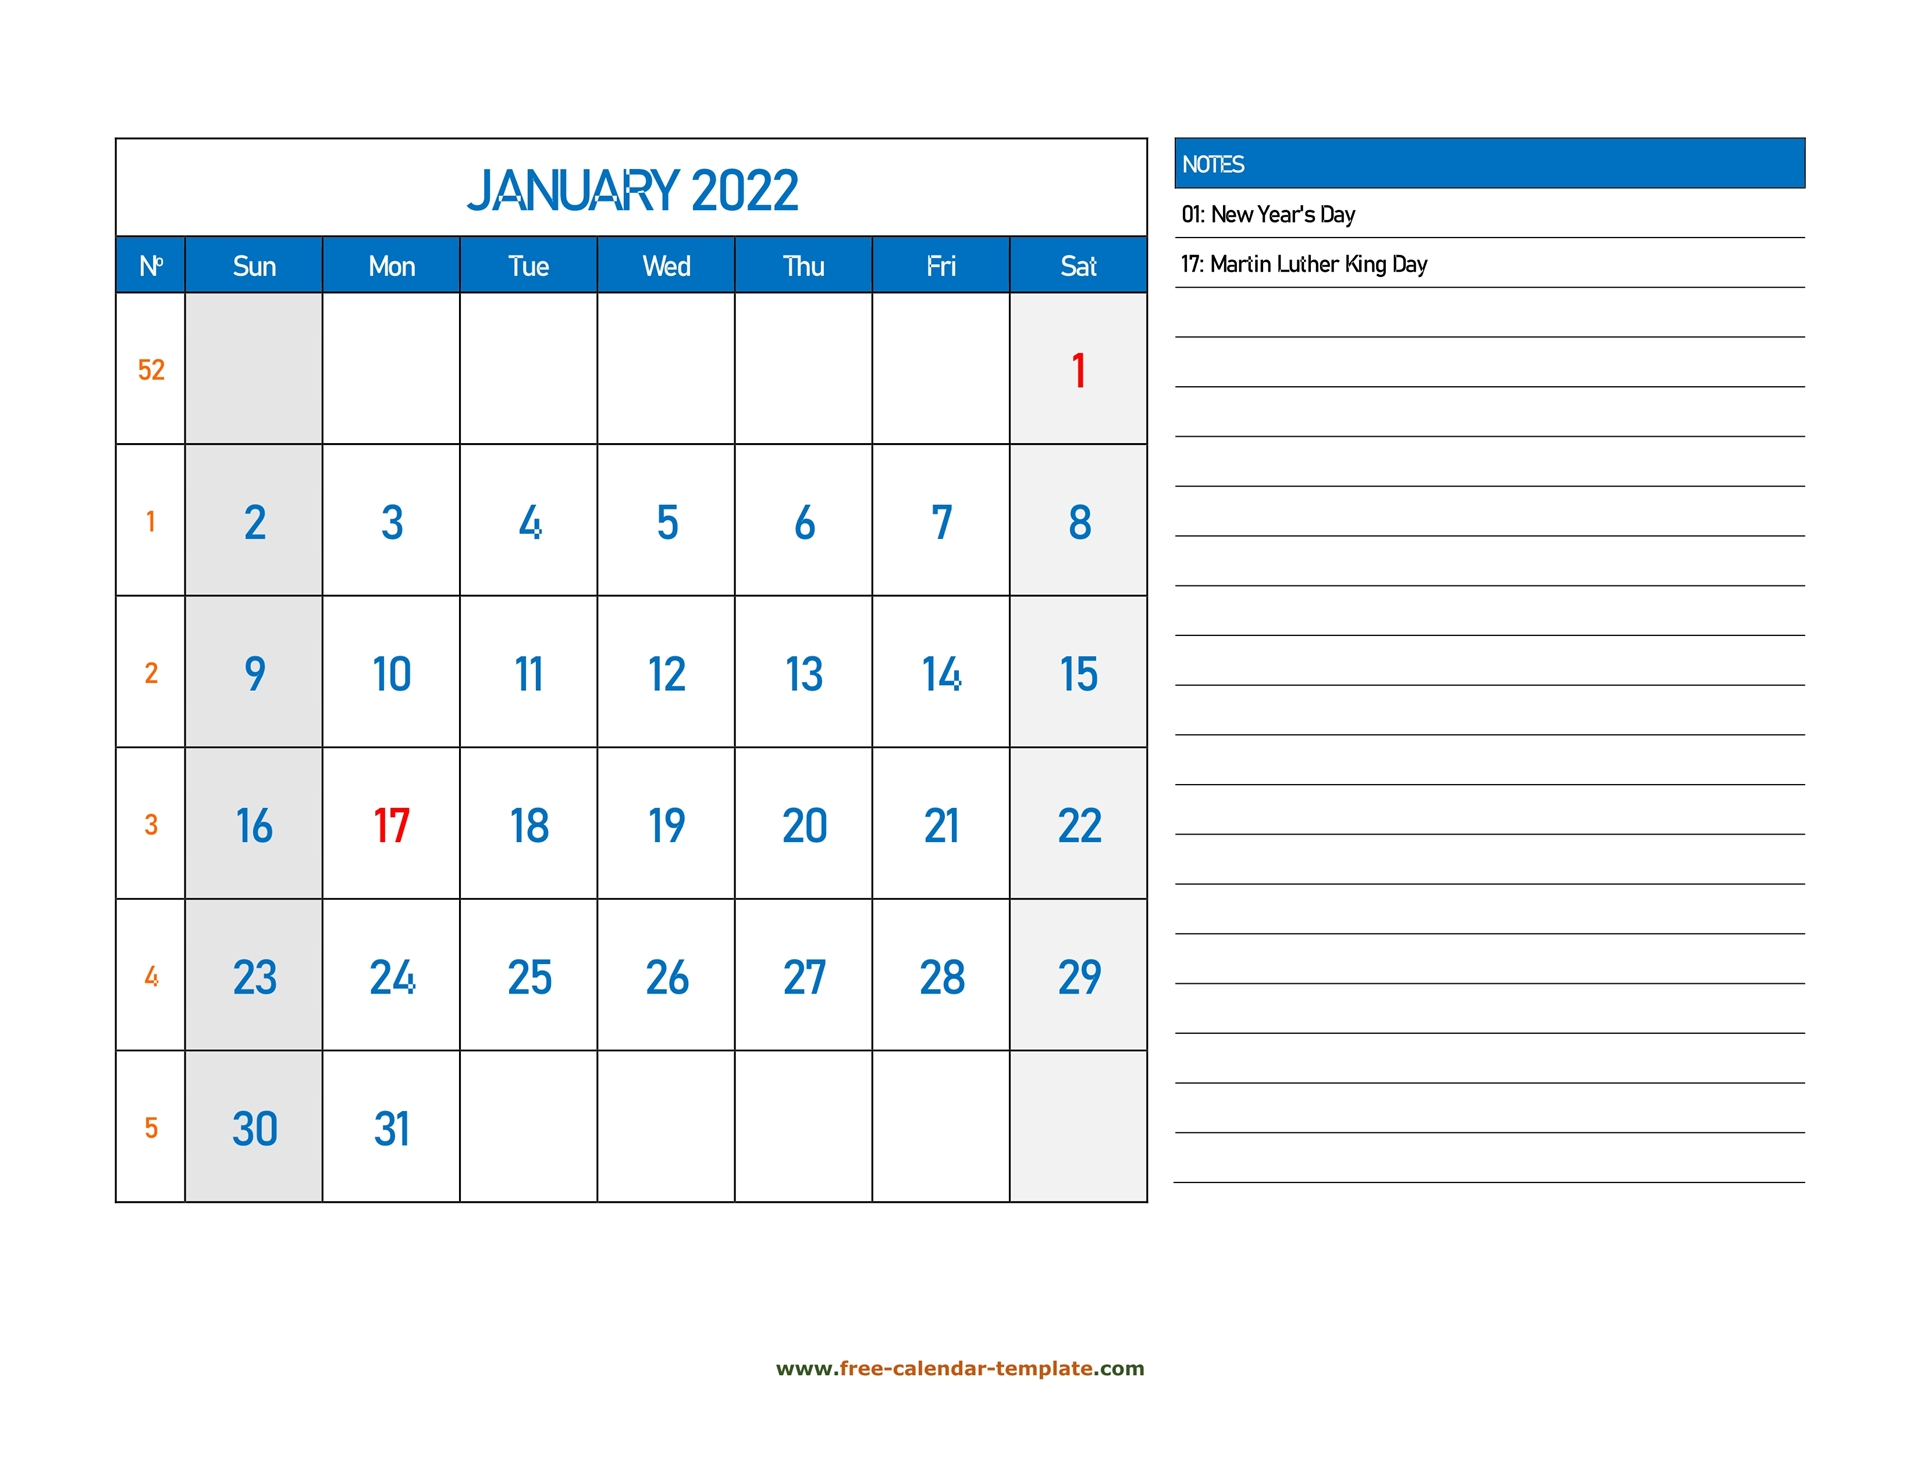 January Calendar 2022 Grid Lines For Holidays And Notes